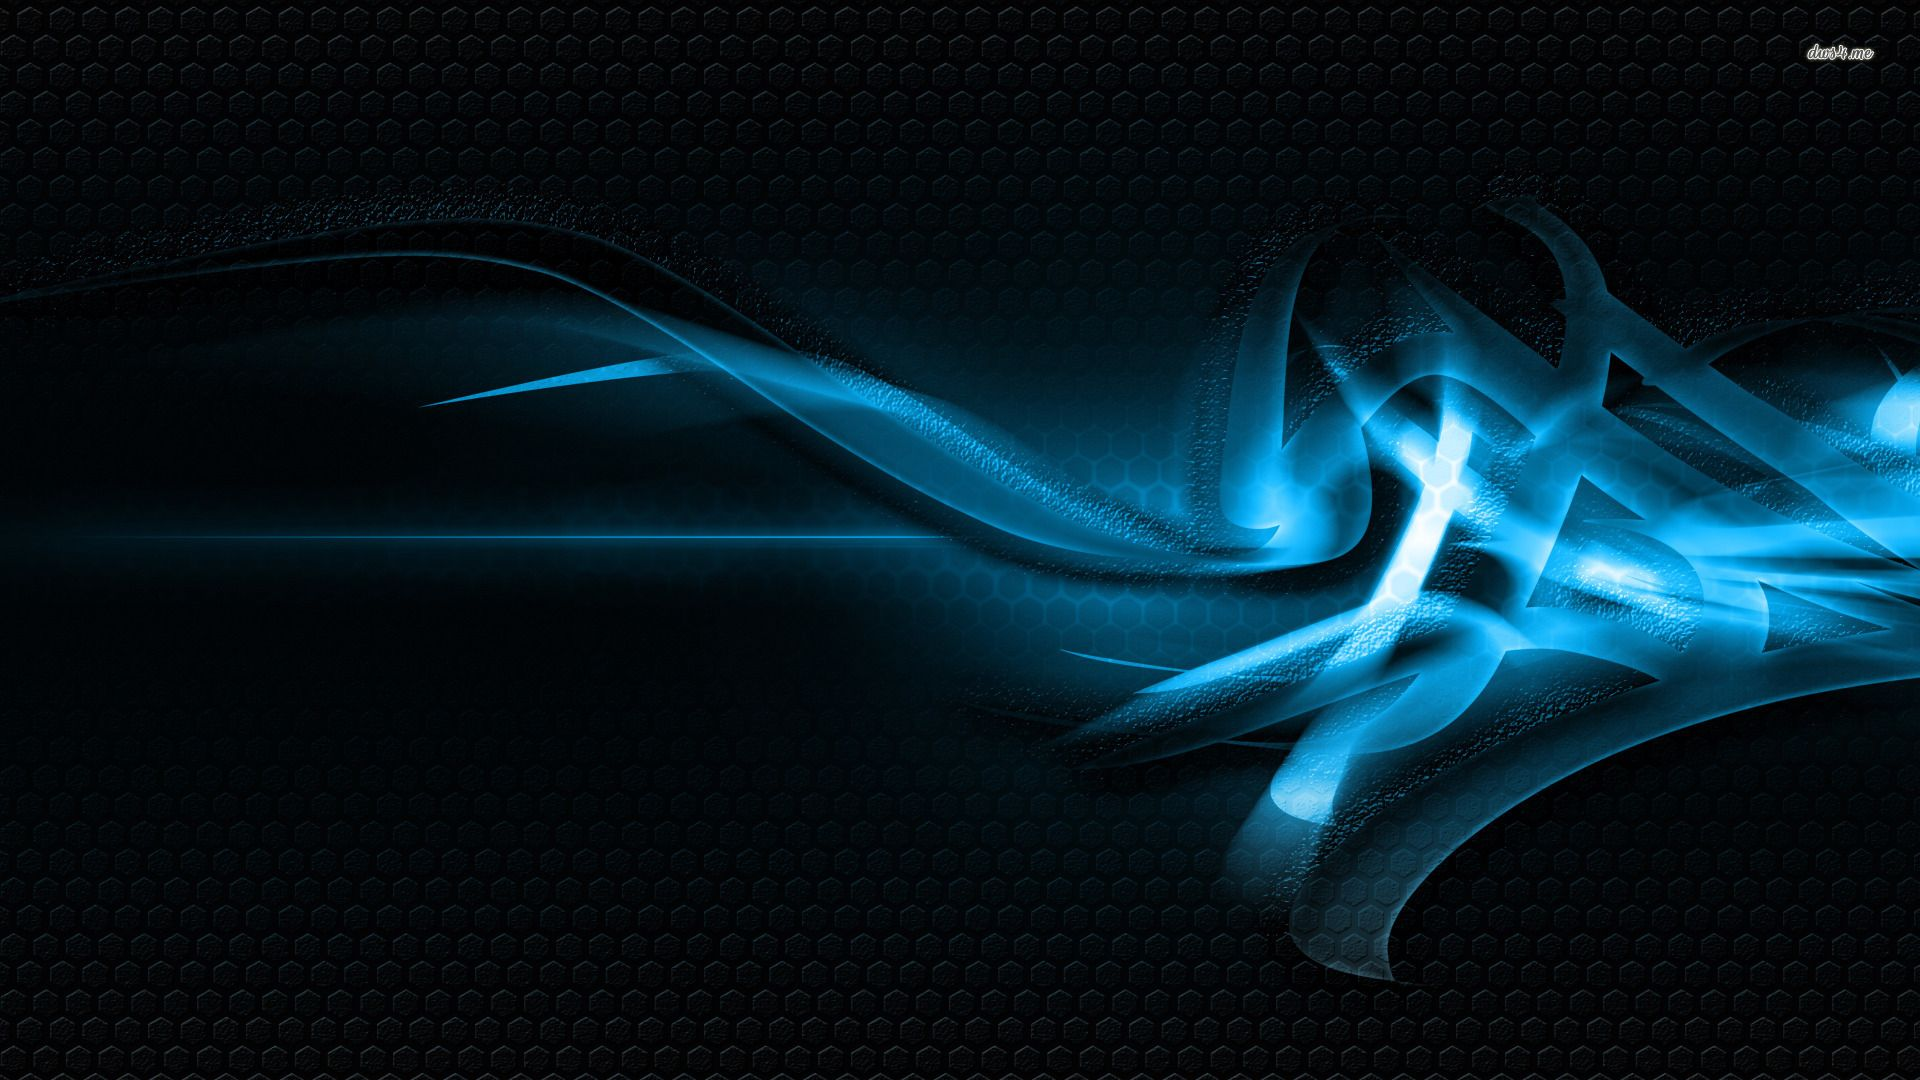 Download 3d Wallpapers For Windows 7